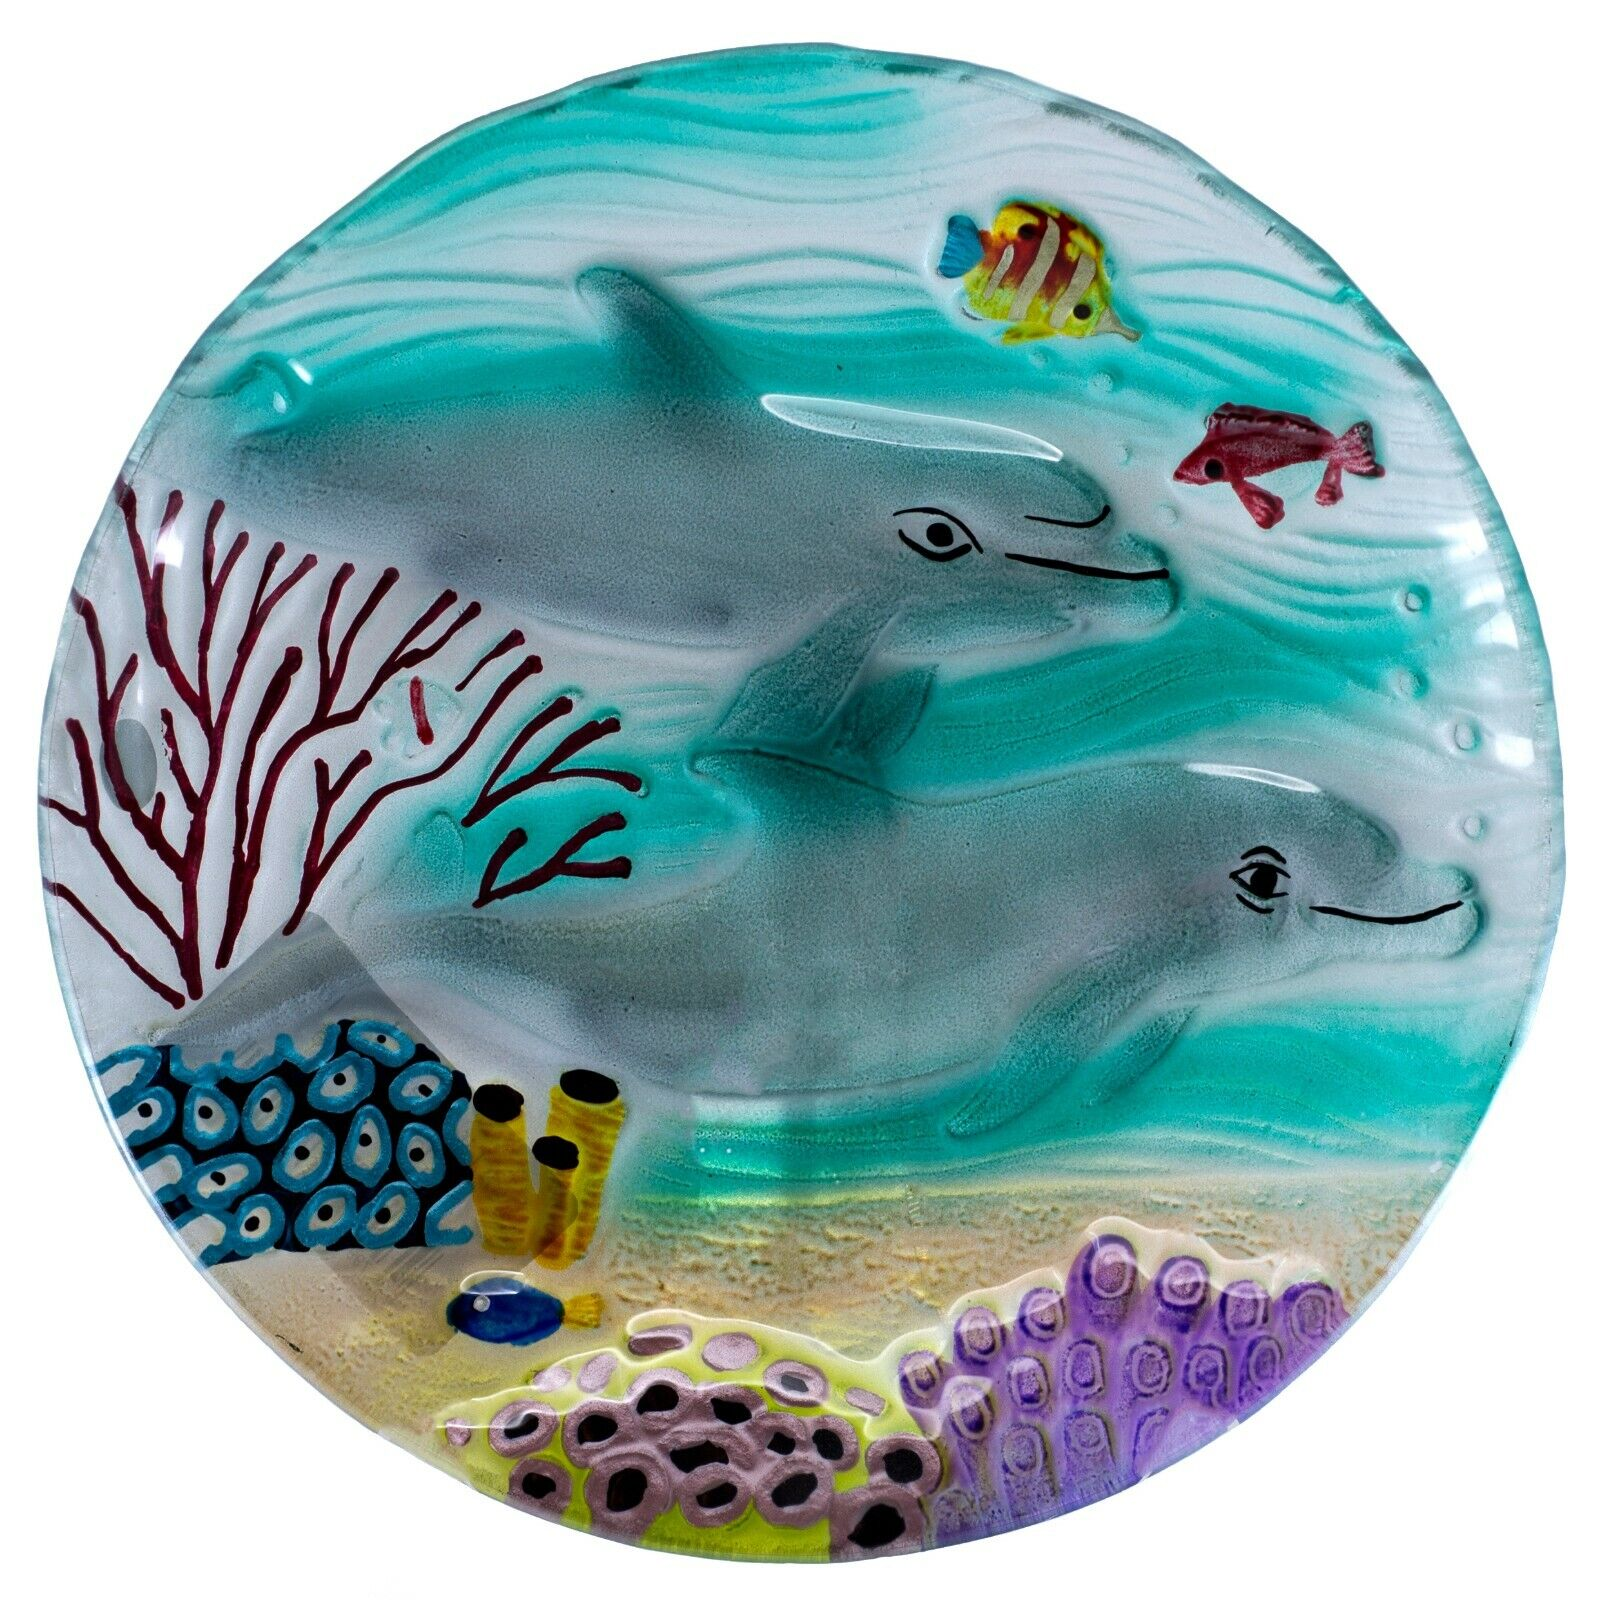 Handcrafted Fused Glass Dolphins With Fish Plate 8 New Decorative  Food Safe